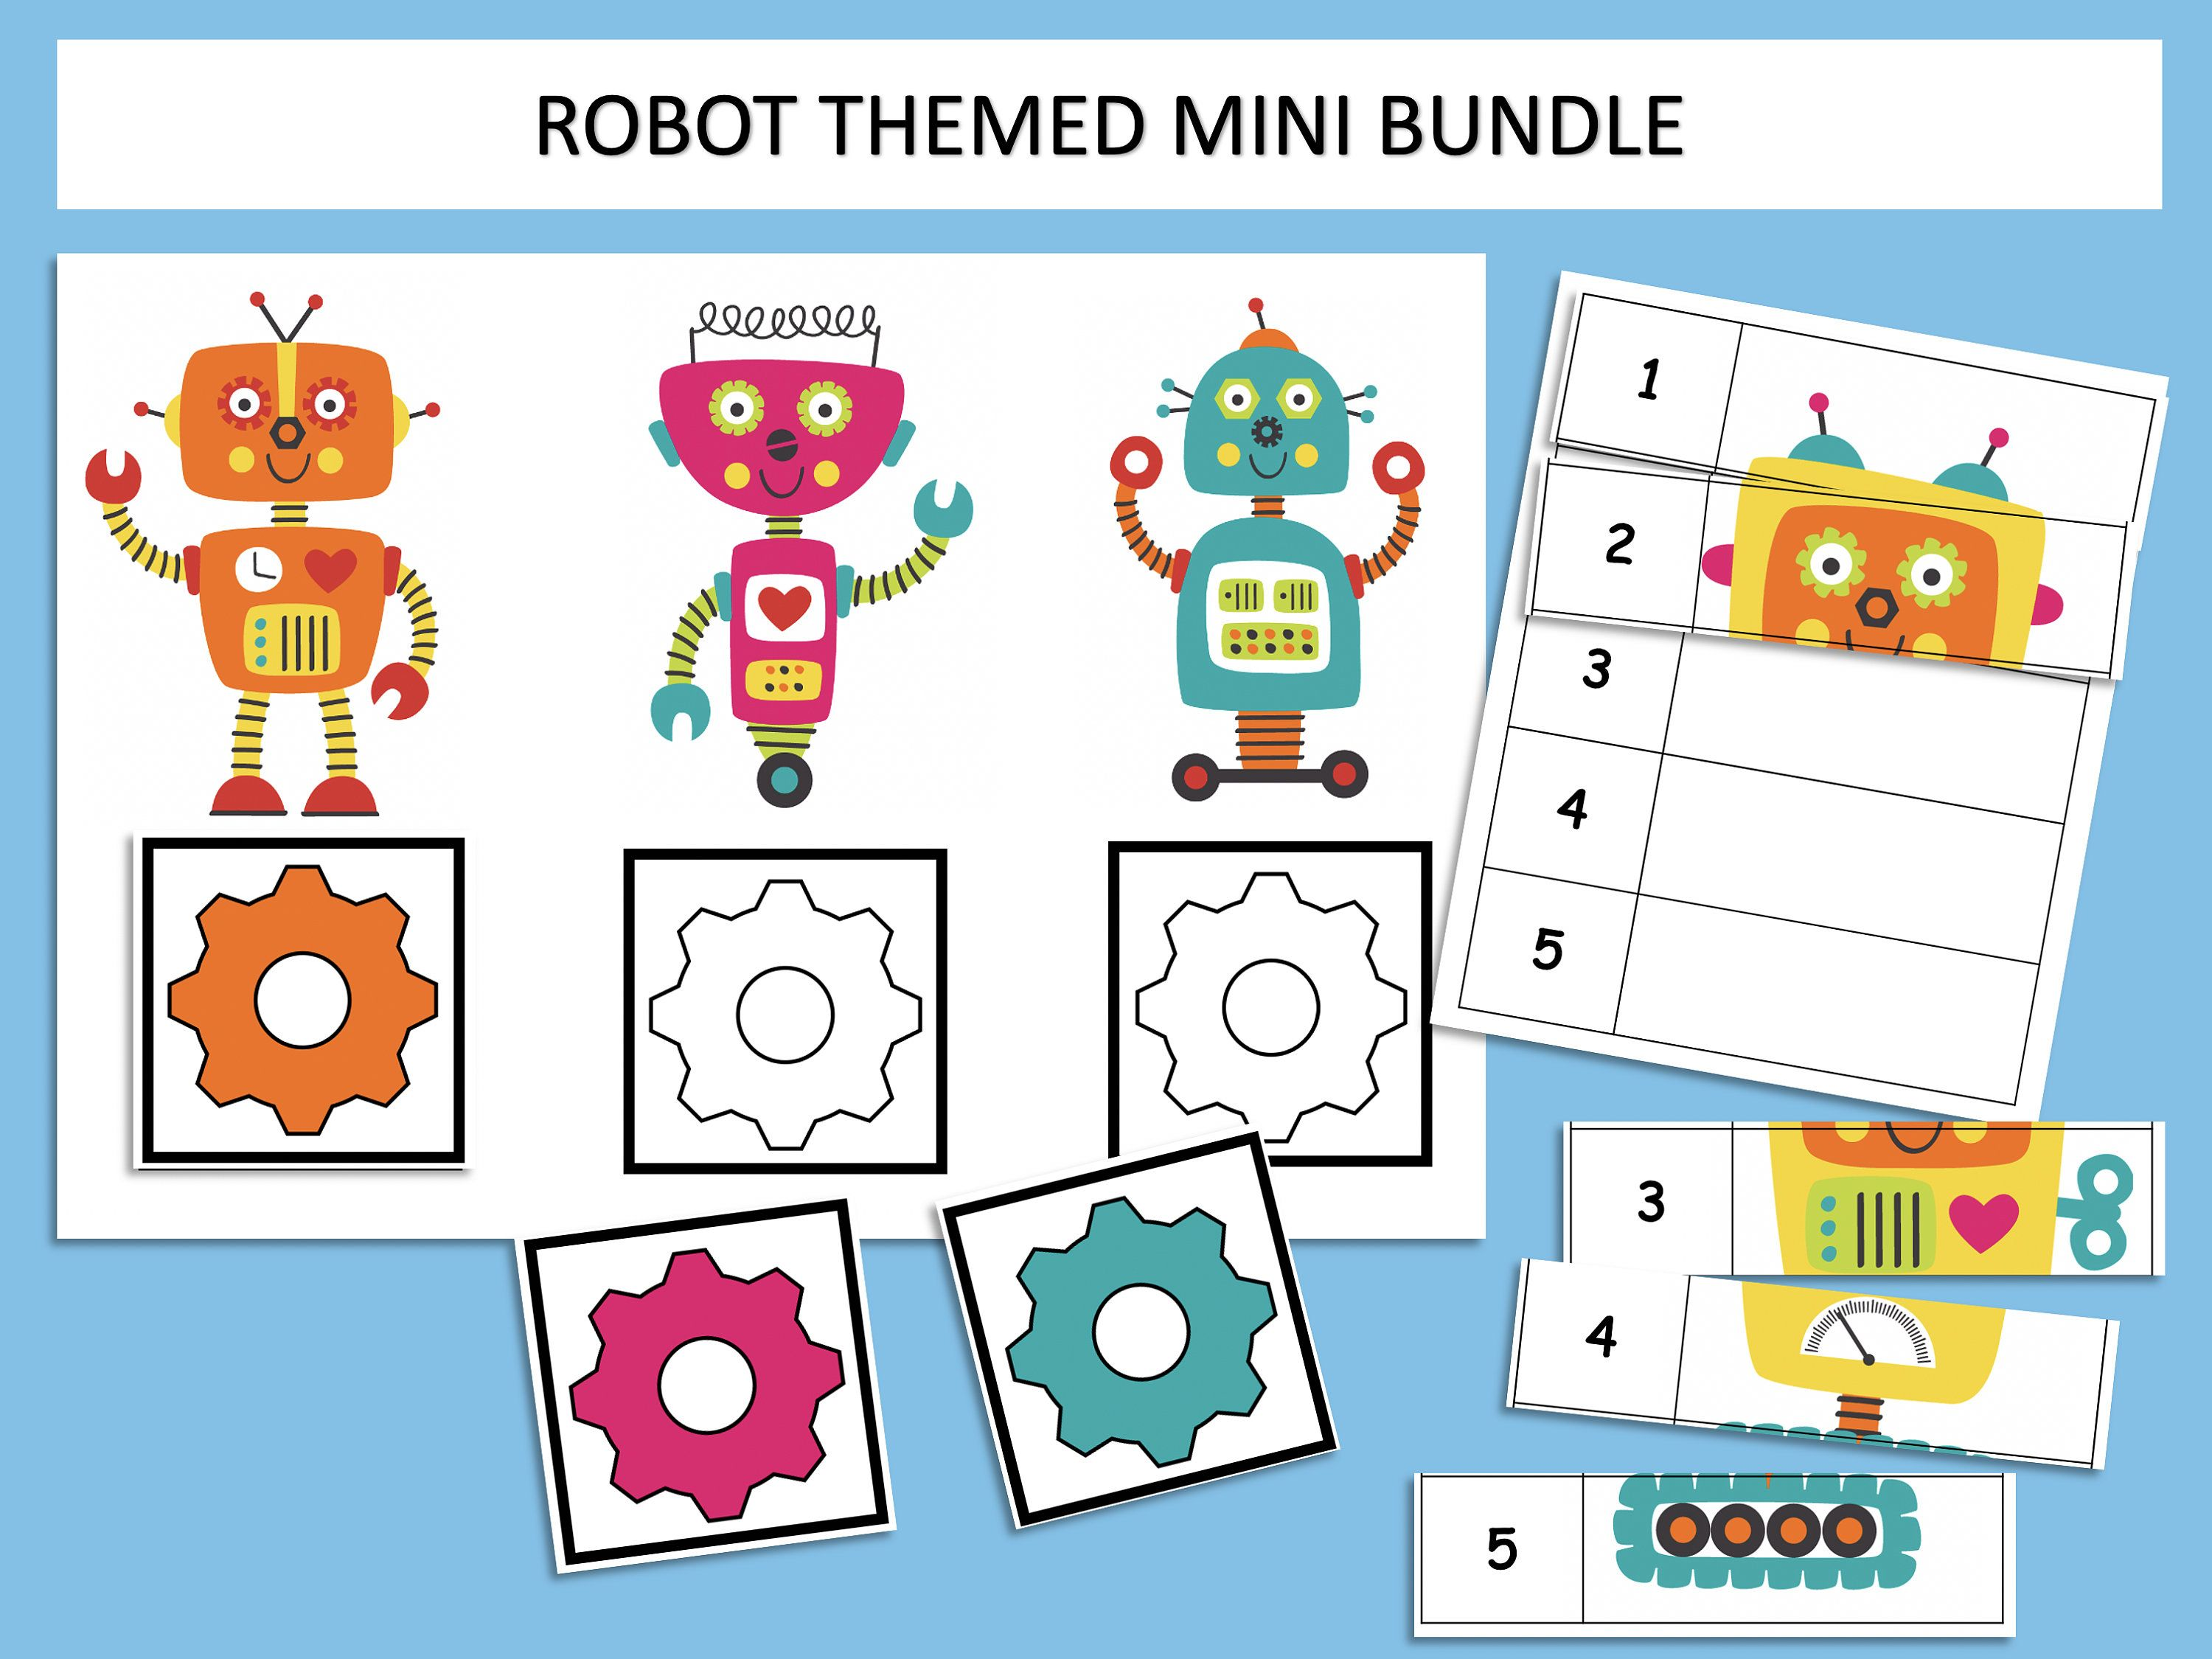 Robot Themed Printable Busy Book Mini Bundle Toddler Preschool And Kindergarten File Folder Game Homeschool Learning Instant Download In 2020 Busy Book Shapes Kindergarten Homeschool Learning [ 2250 x 3000 Pixel ]